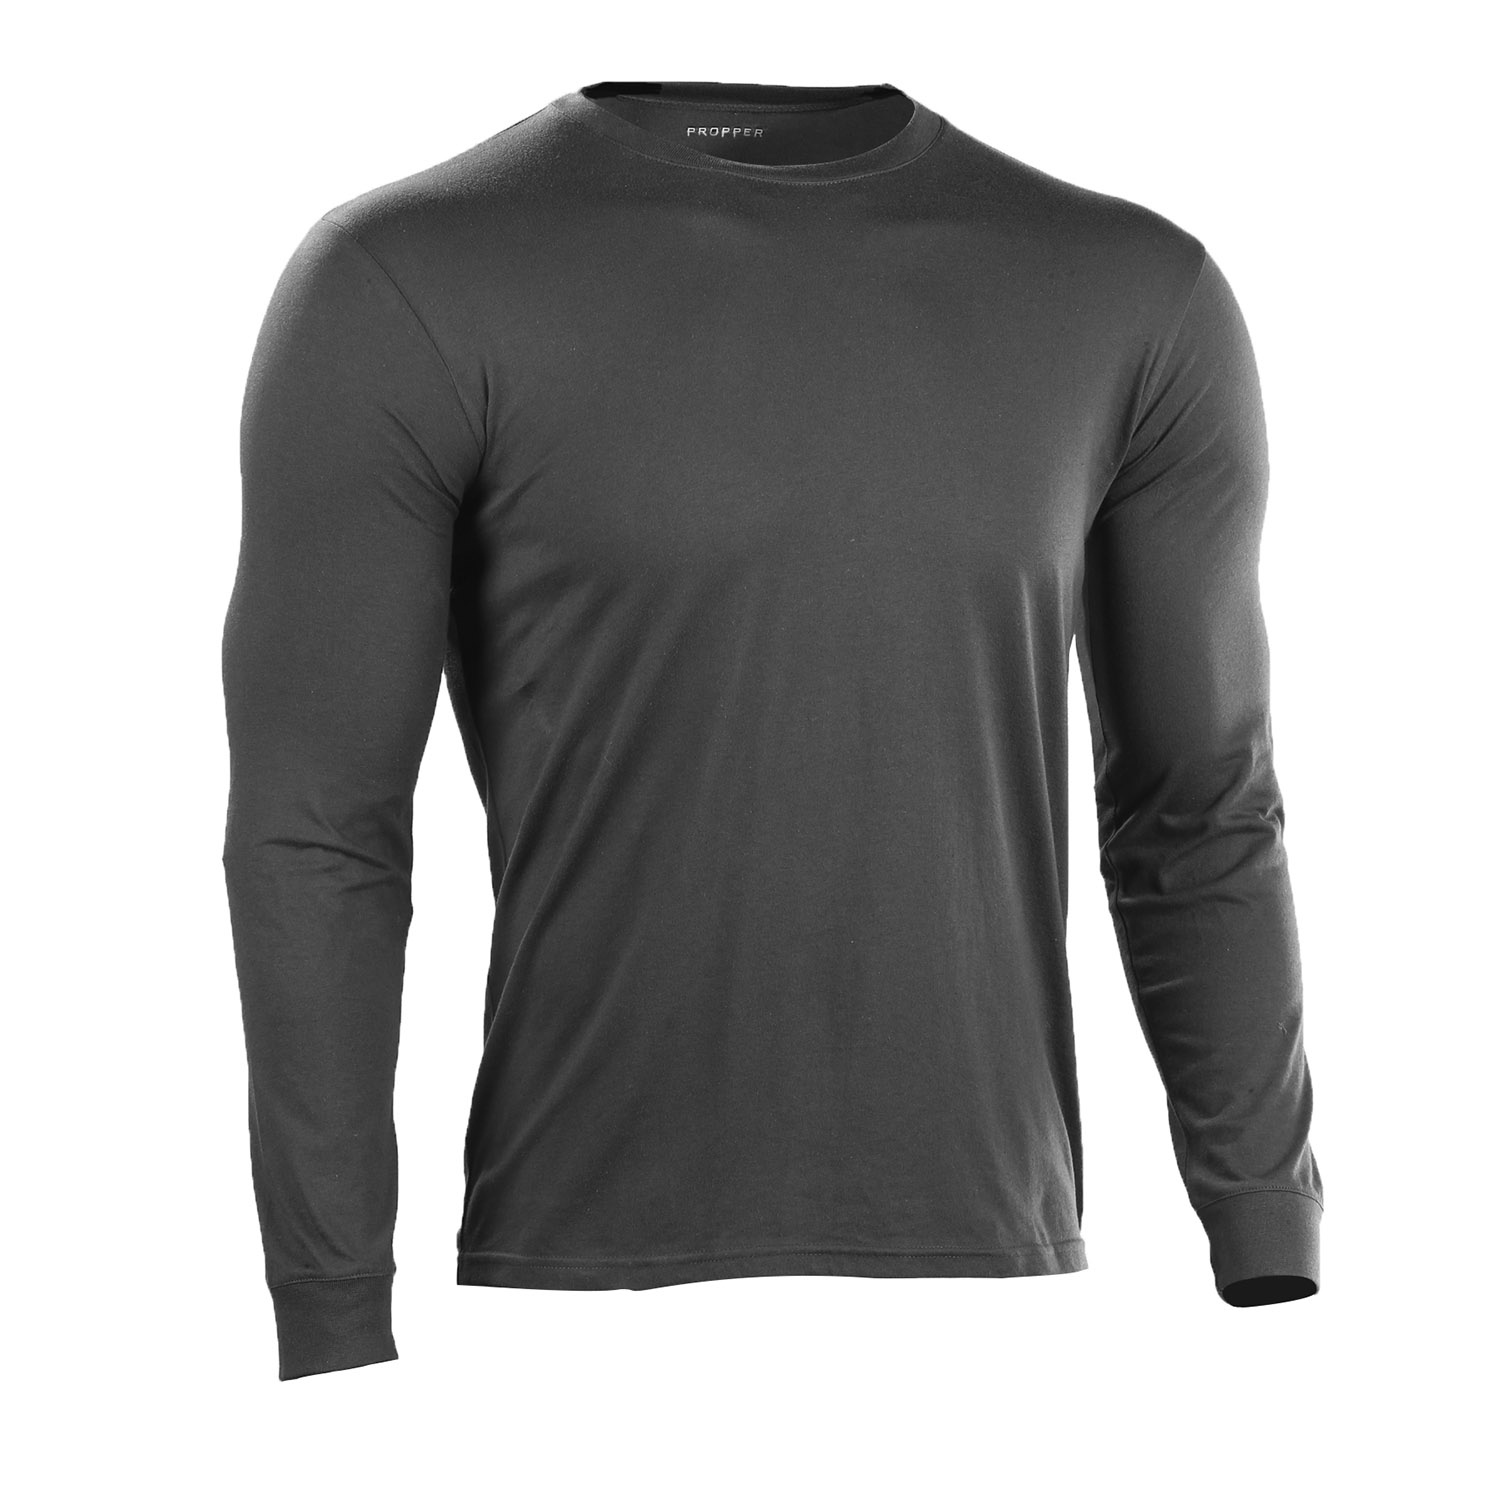 Propper Long Sleeve T-Shirts (2 Pack)